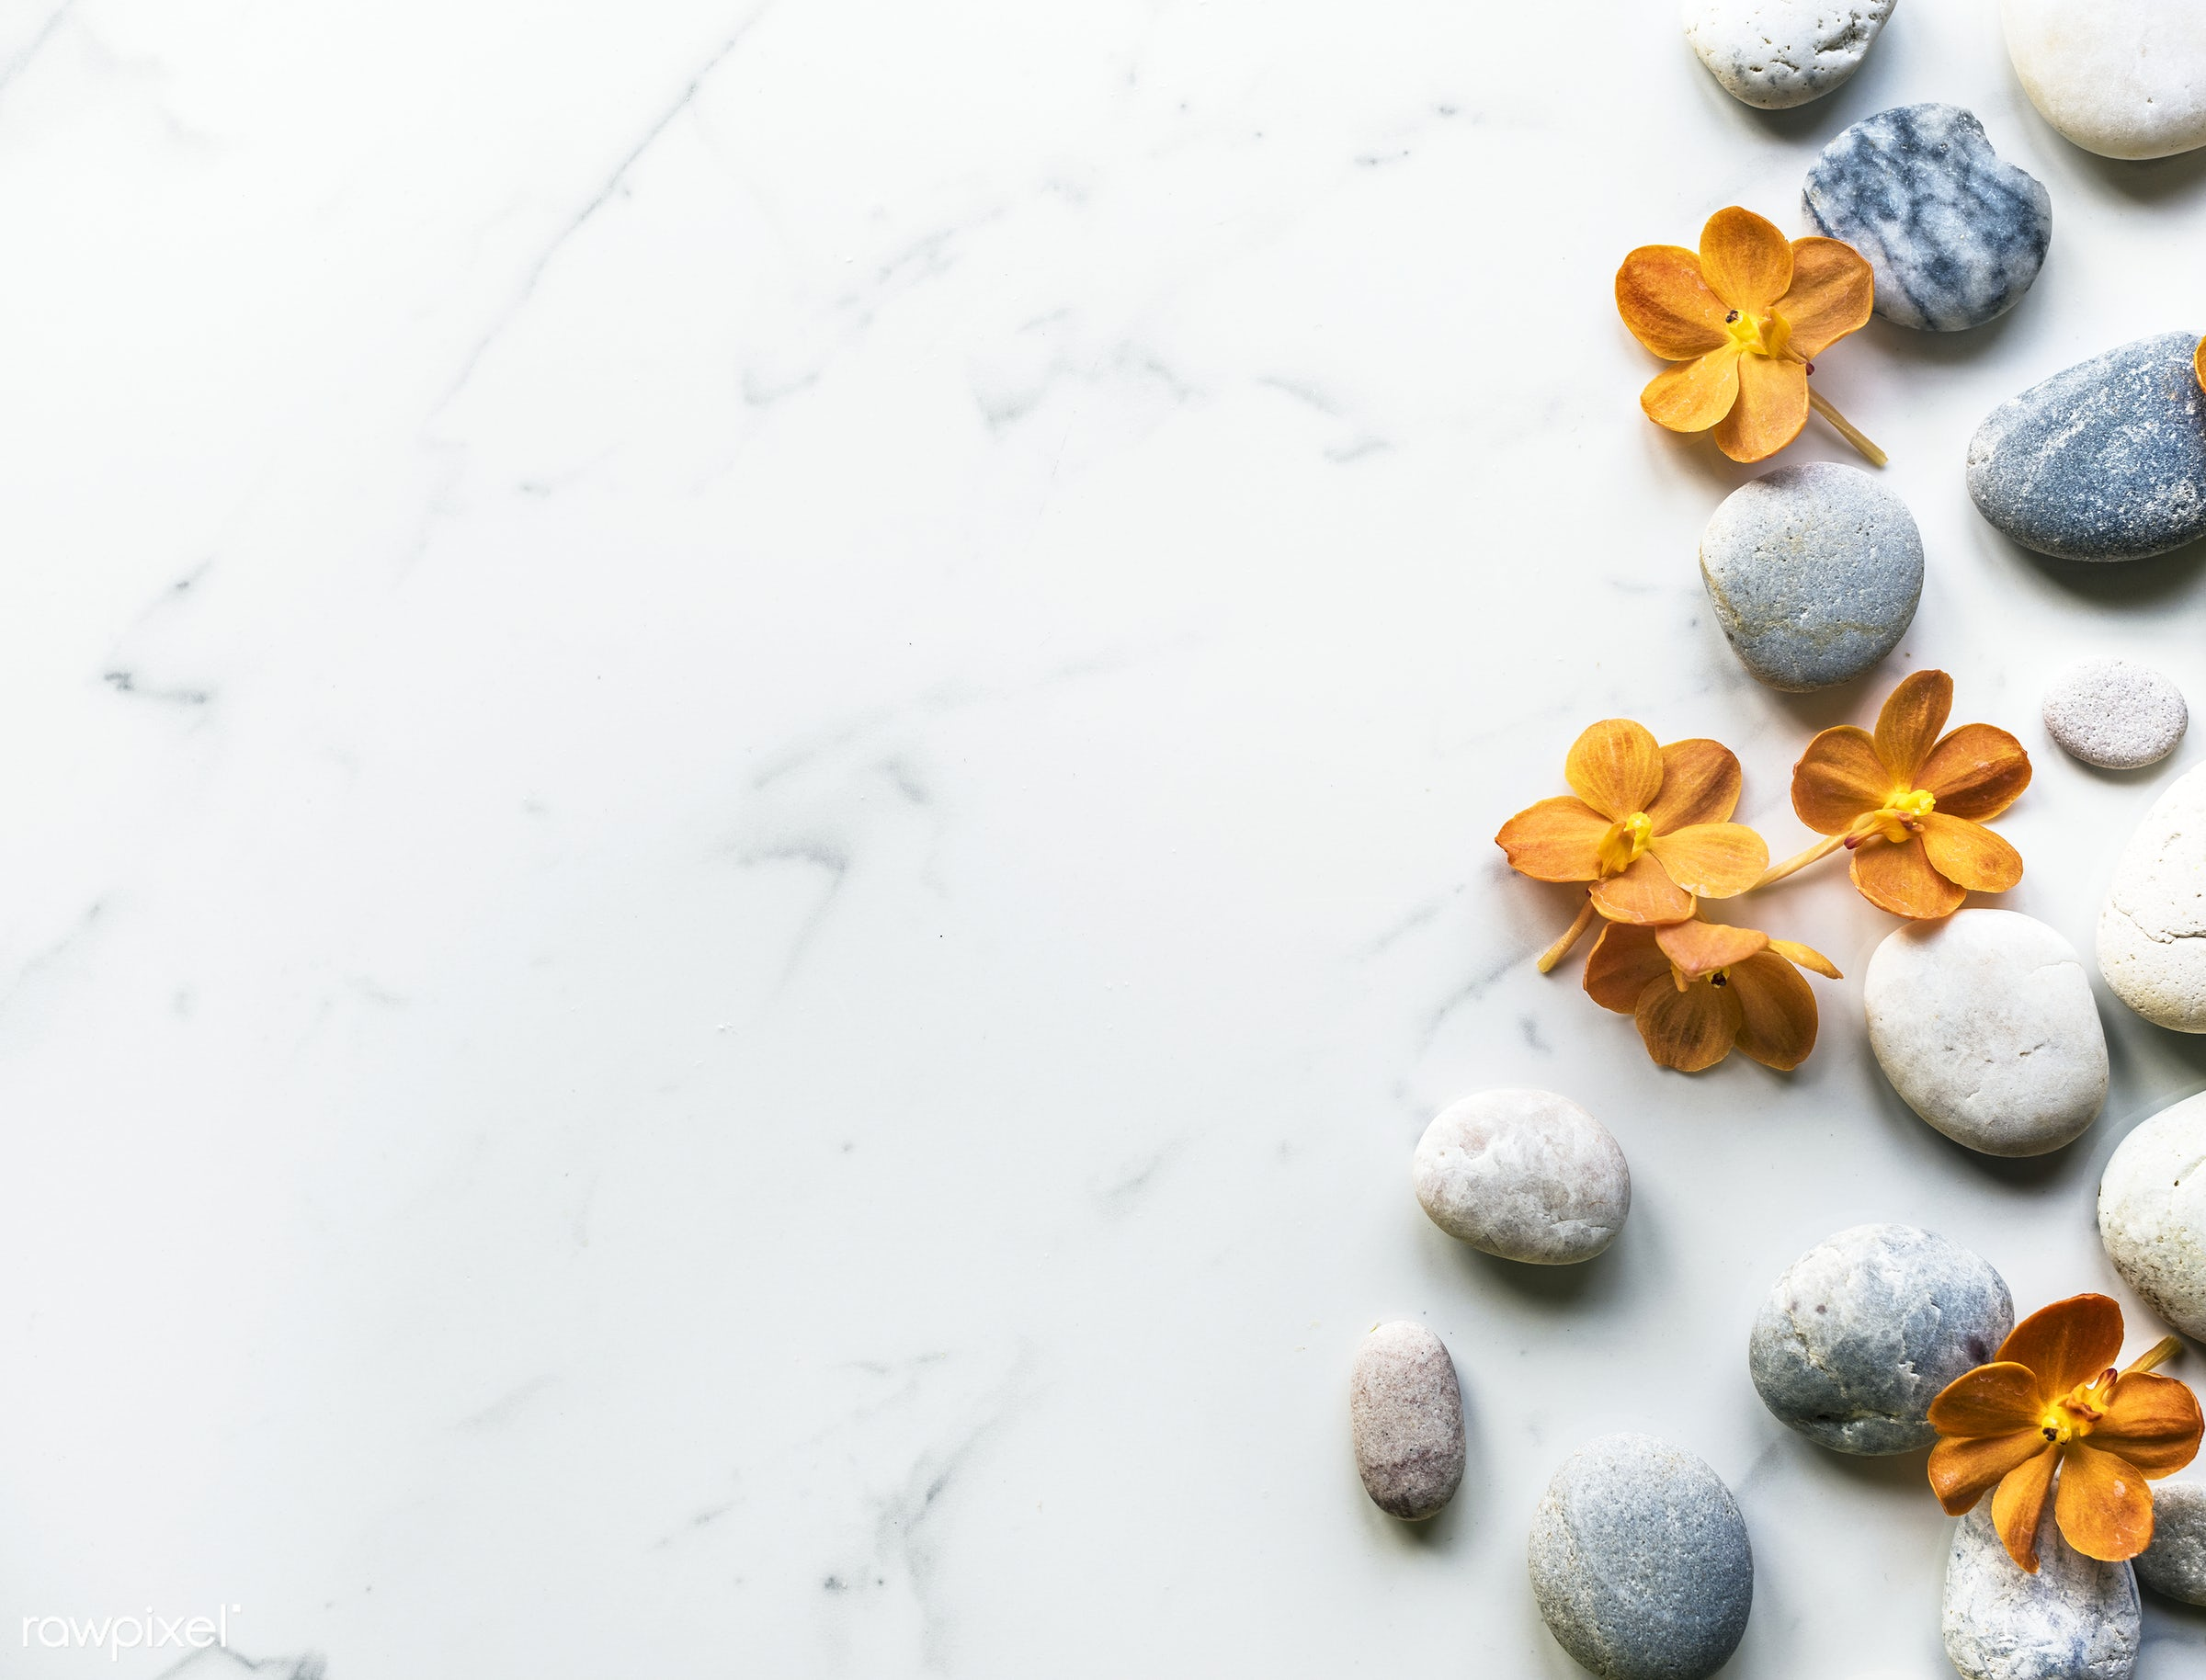 calm, concept, aroma, relax, treatment, stone, rock, beauty, blossom, balance, tranquil, nature, fresh, flower, spa,...